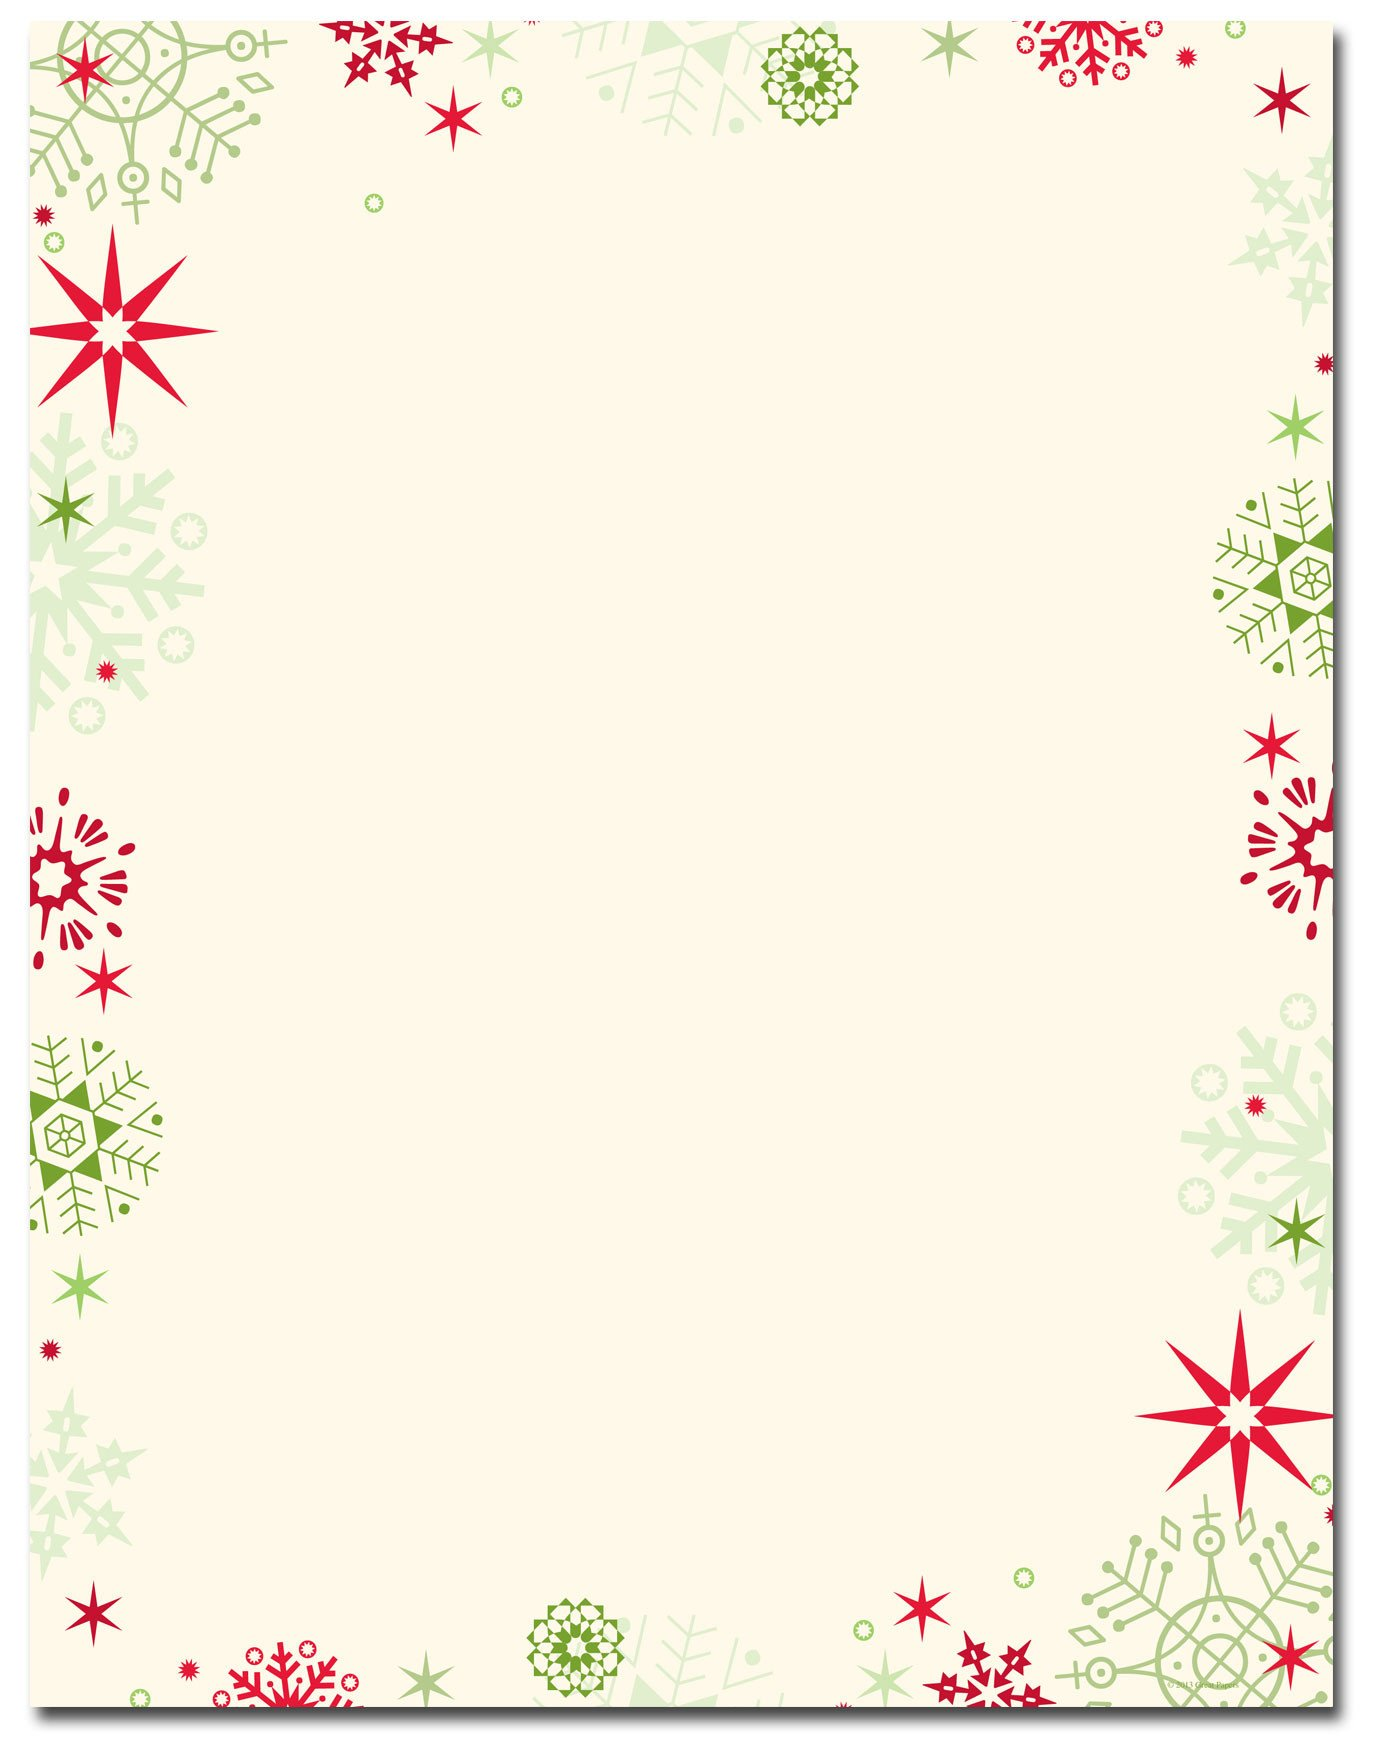 Free Printable Christmas Paper Christmas Stationery Red & Green Flakes Letterhead